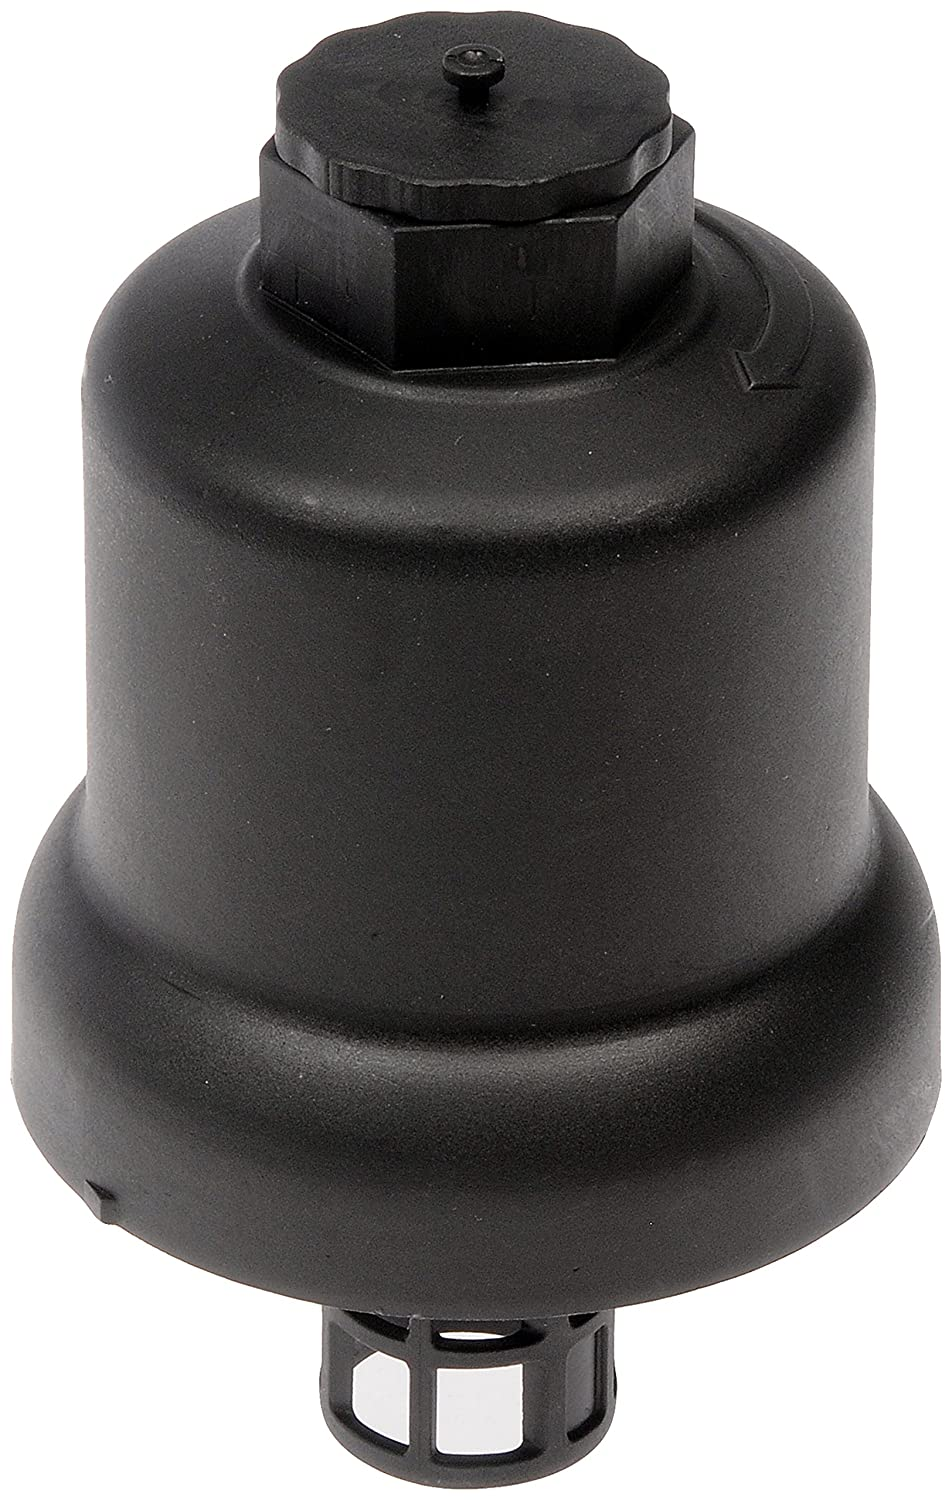 Dorman 917-049 Plastic Oil Filter Cap